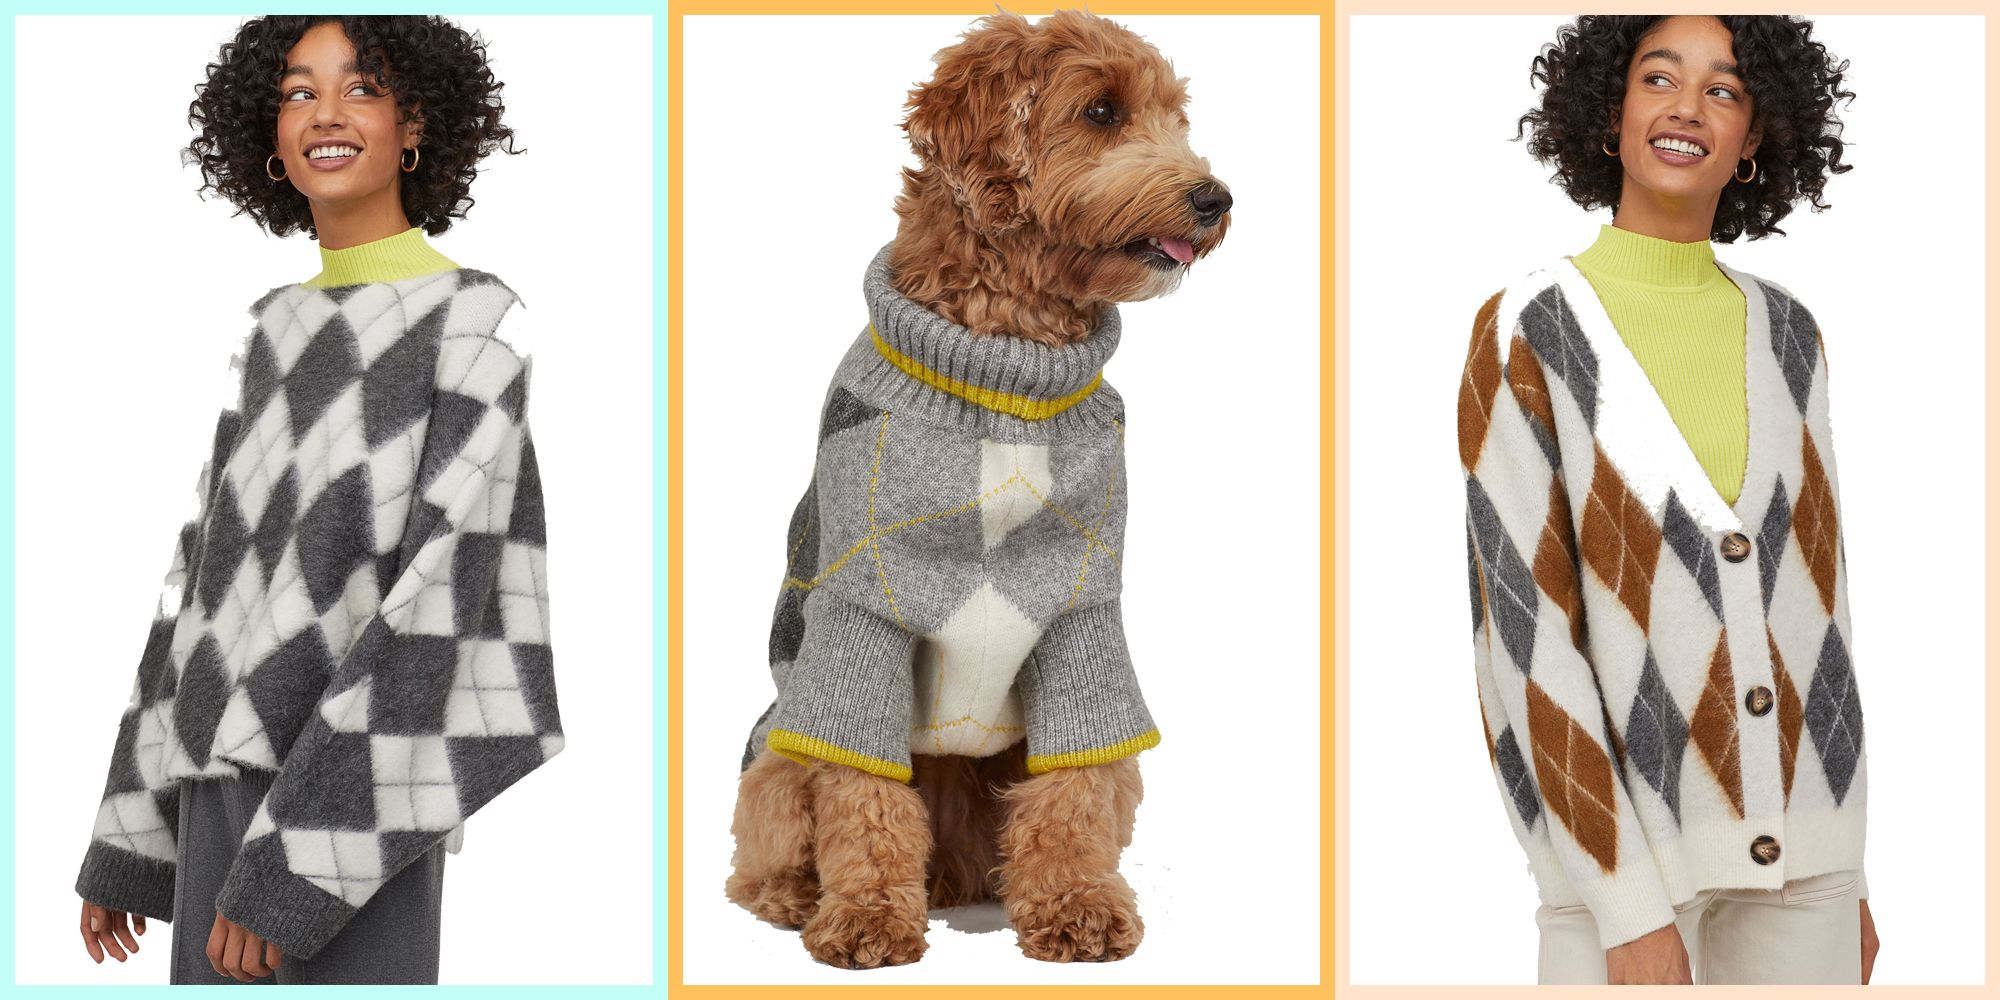 H&M has collaborated with Pringle of Scotland on a gorgeous new knitwear collection